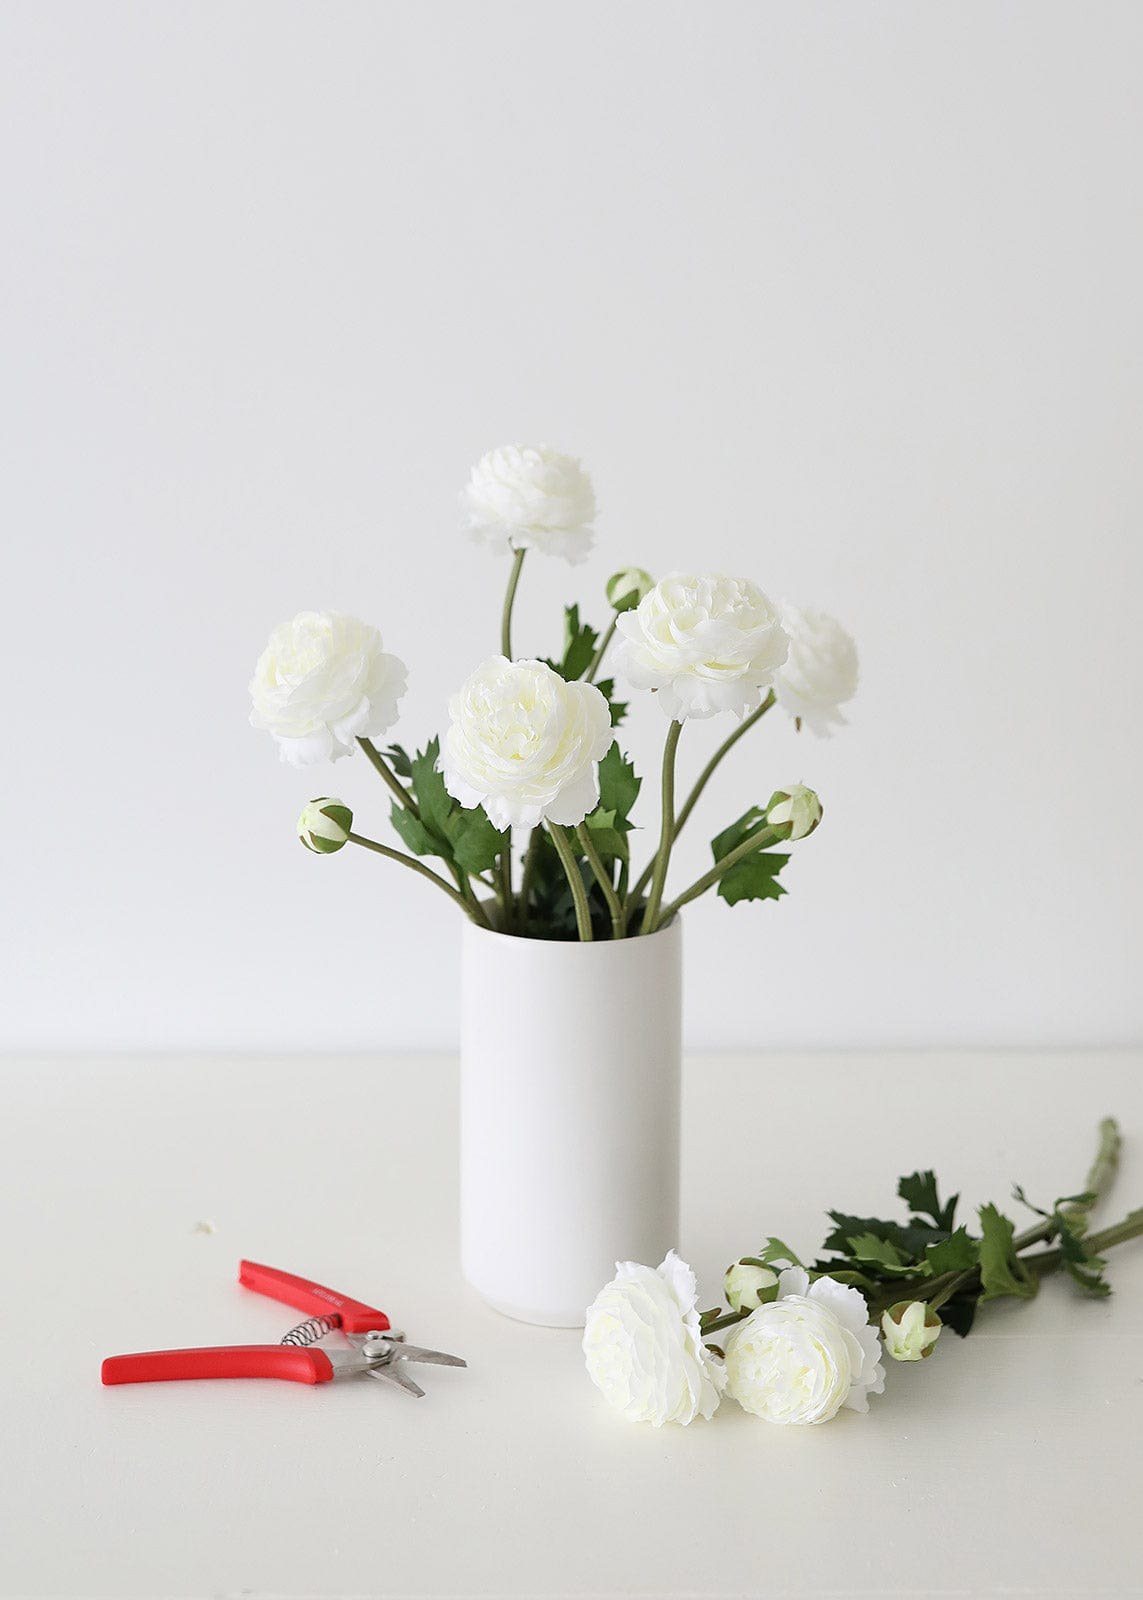 White Flower Arrangement with Floral Shears